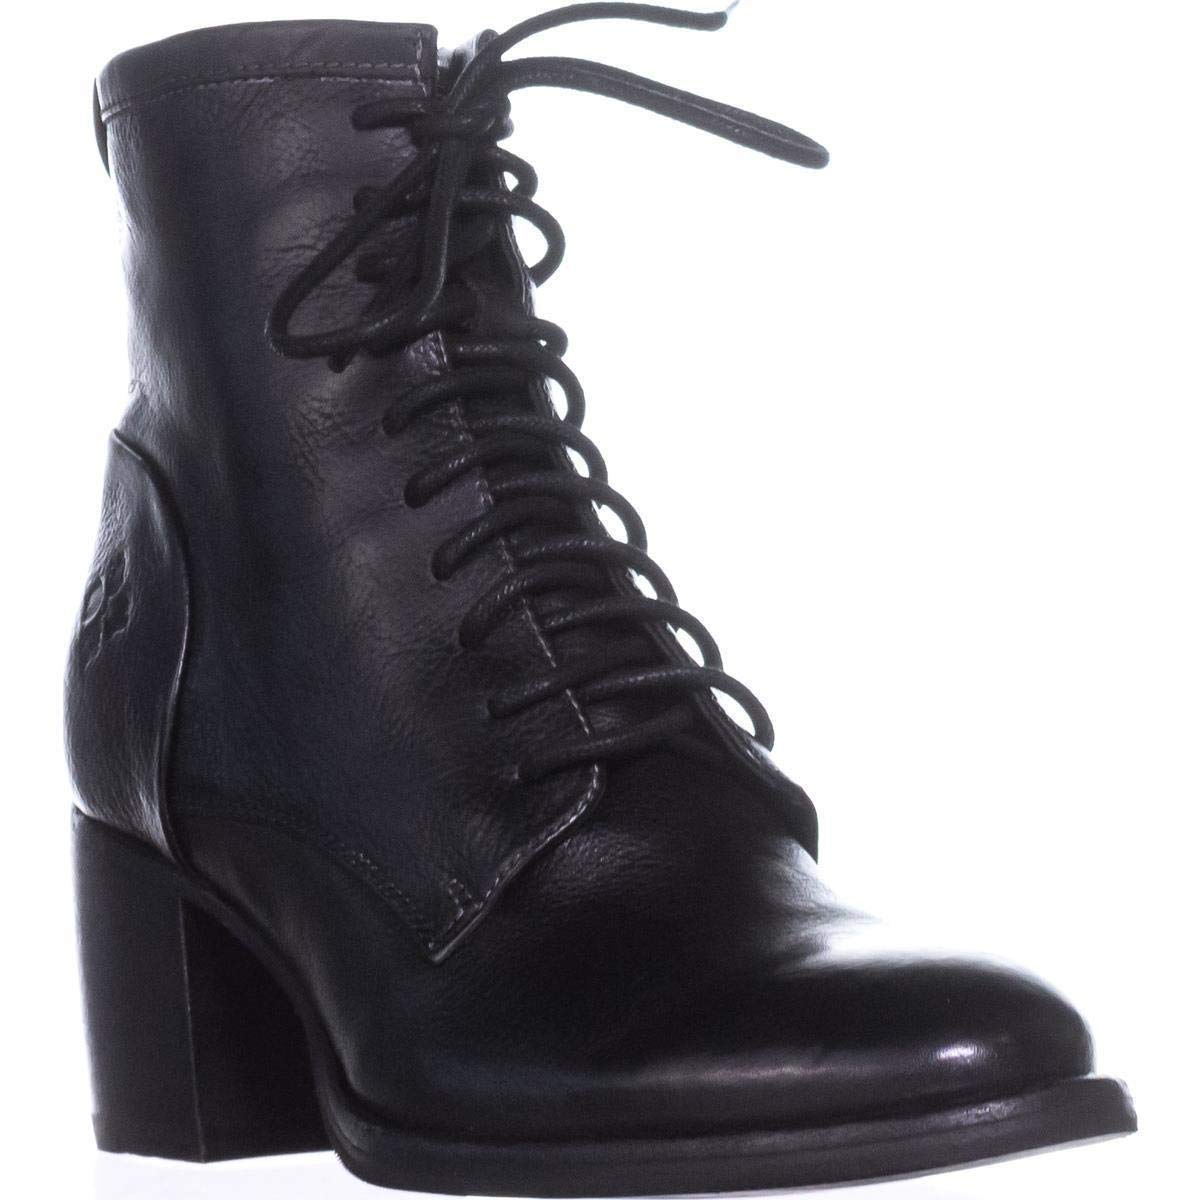 thumbnail 7 - Patricia-Nash-Womens-Sicily-Leather-Closed-Toe-Ankle-Fashion-Boots